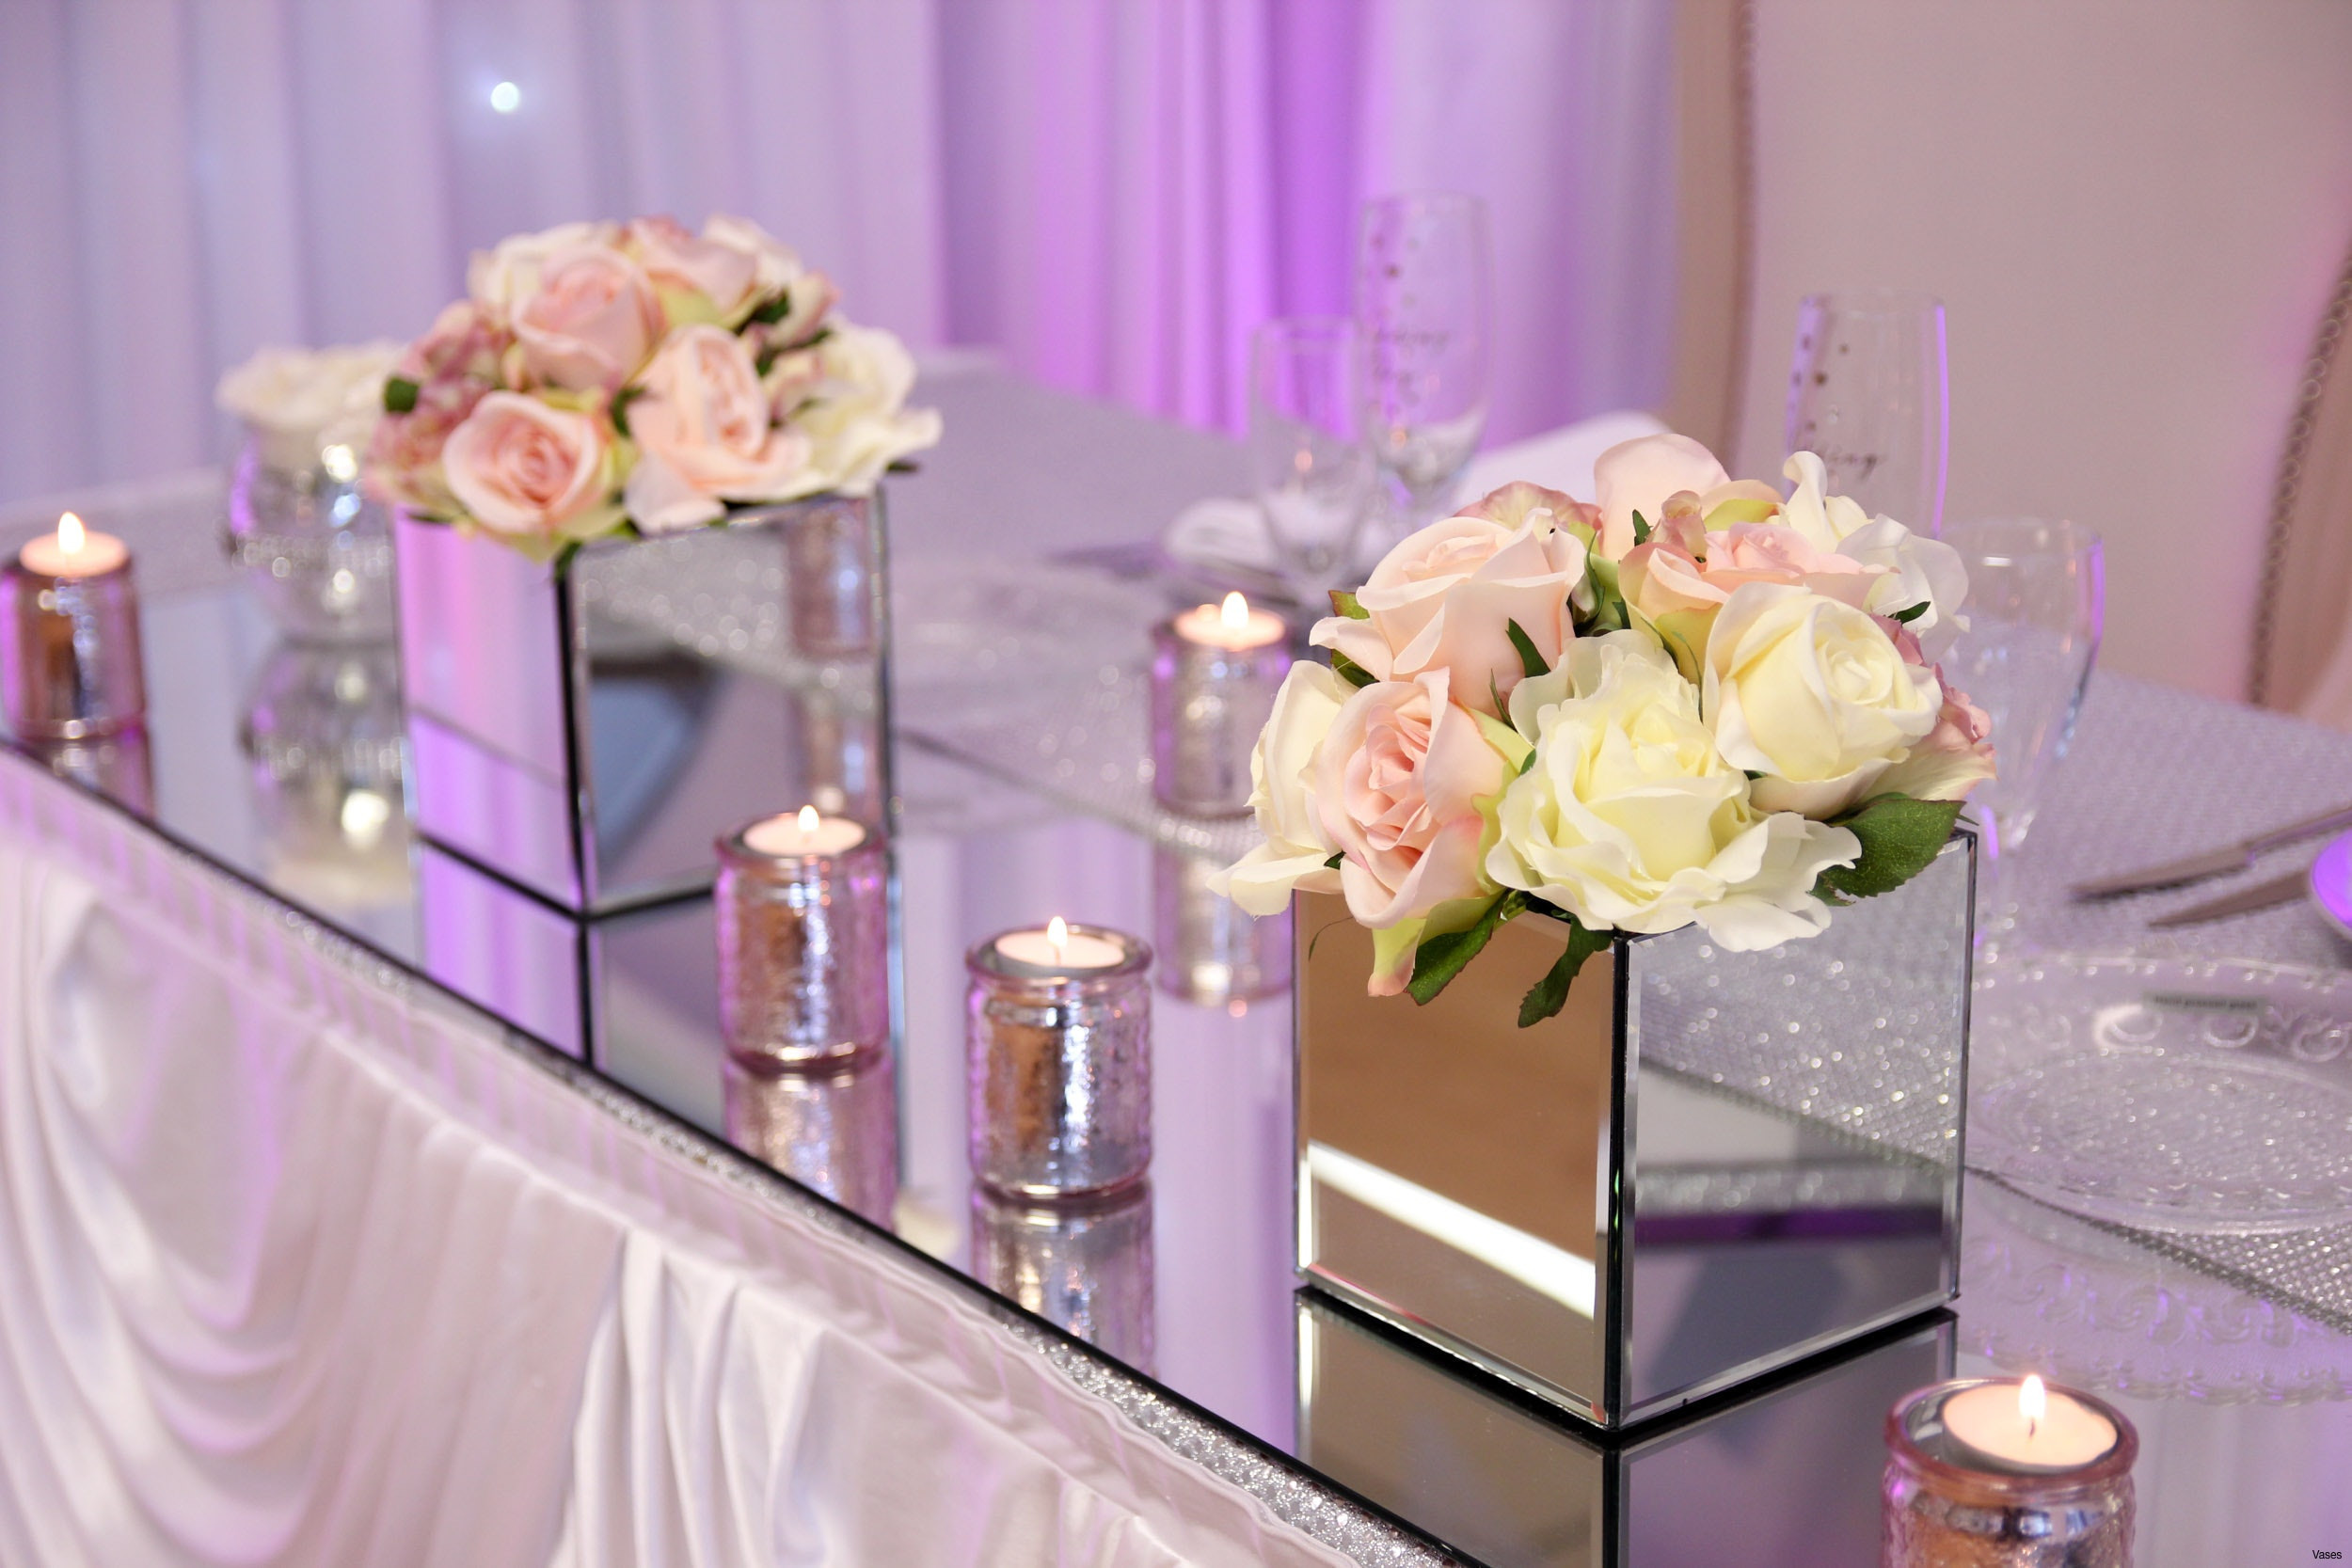 pink flowers in glass vase of wedding party favors awesome mirrored square vase 3h vases mirror regarding wedding party favors awesome mirrored square vase 3h vases mirror table decorationi 0d weddings photos